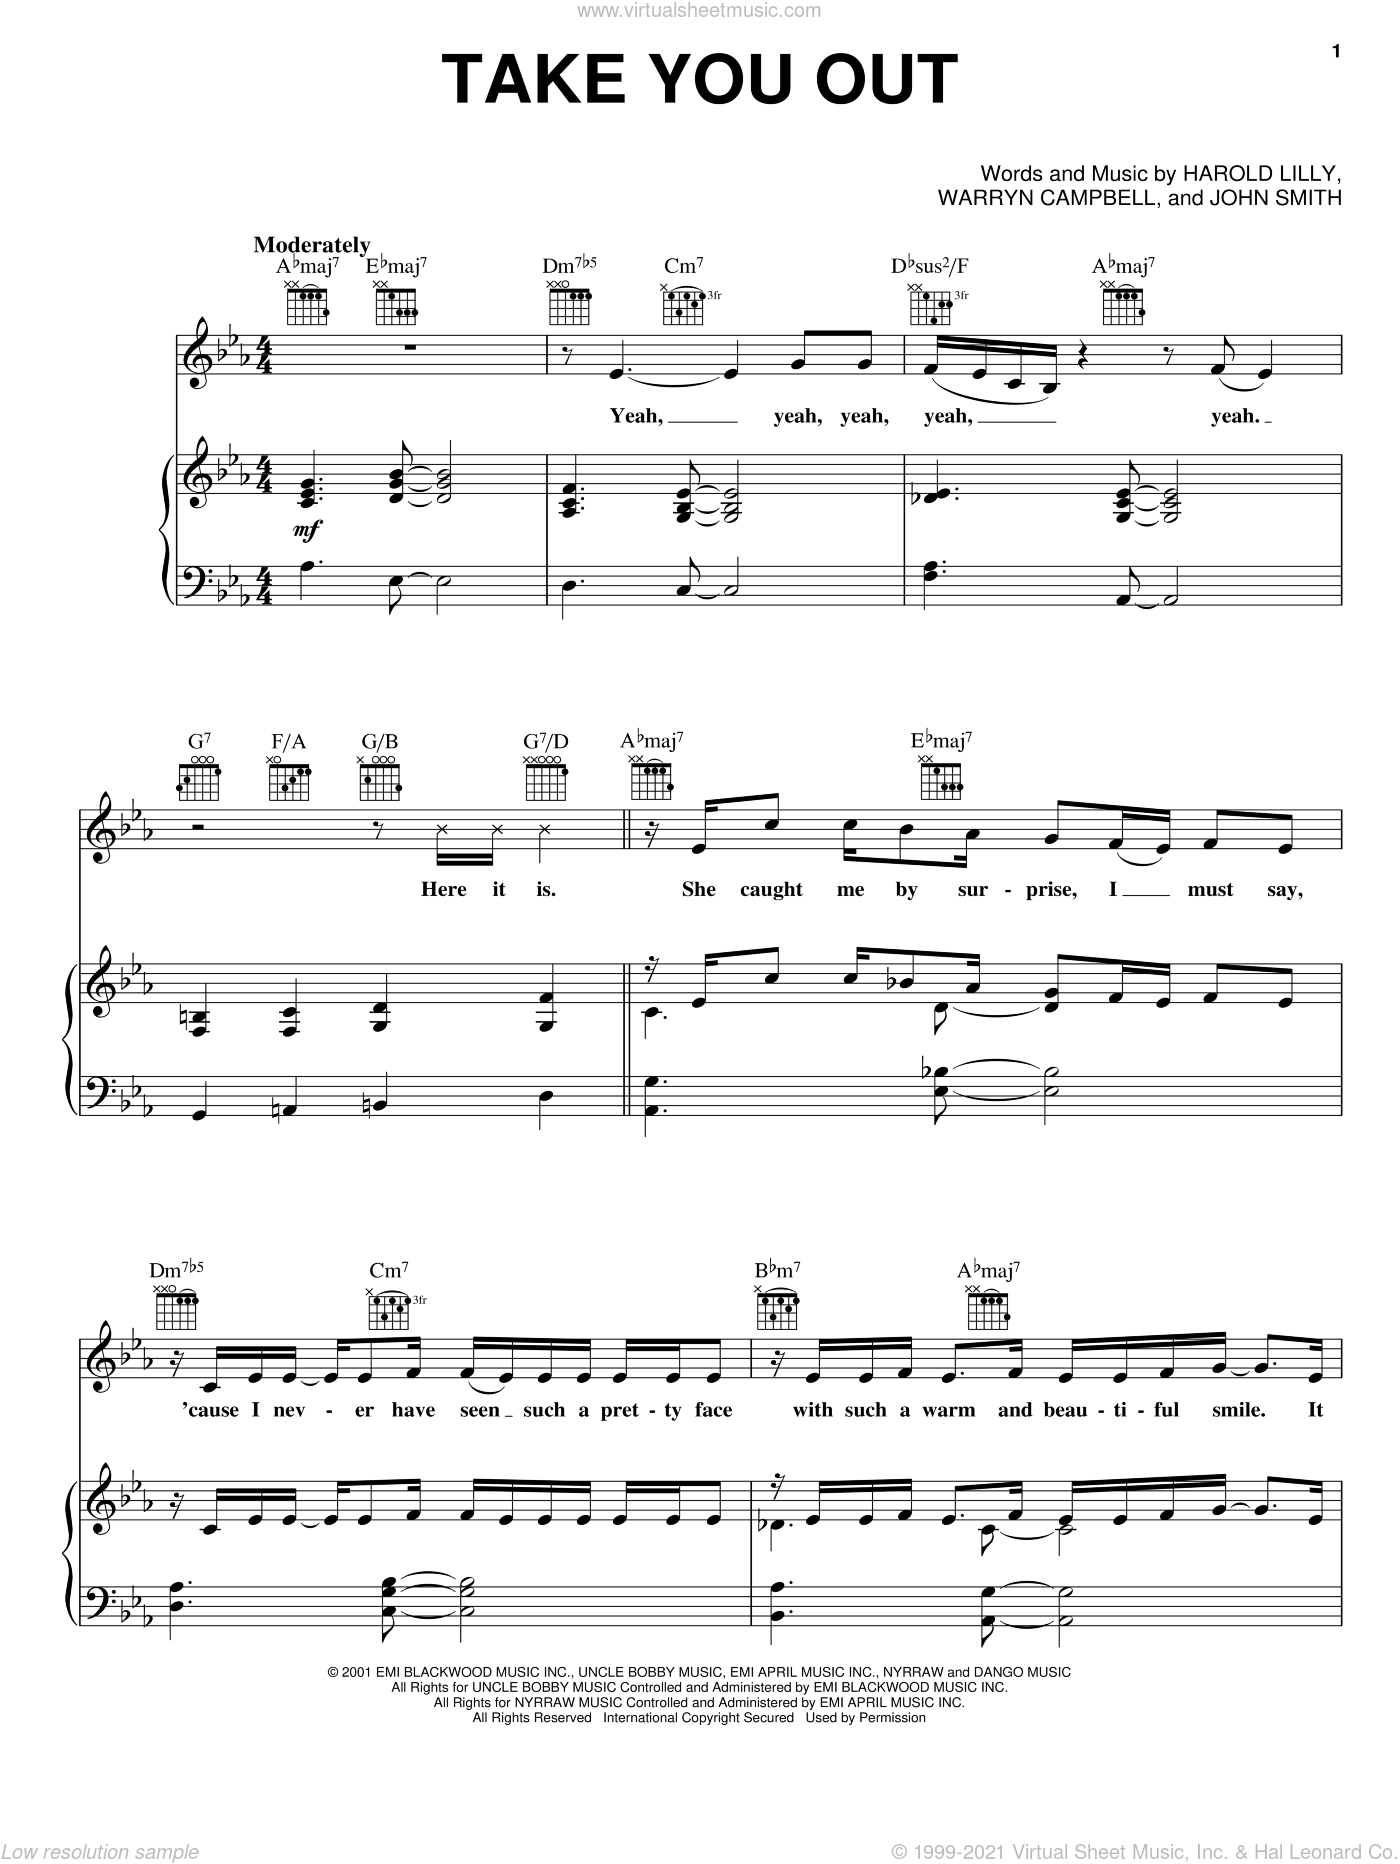 Take You Out sheet music for voice, piano or guitar by Warryn Campbell